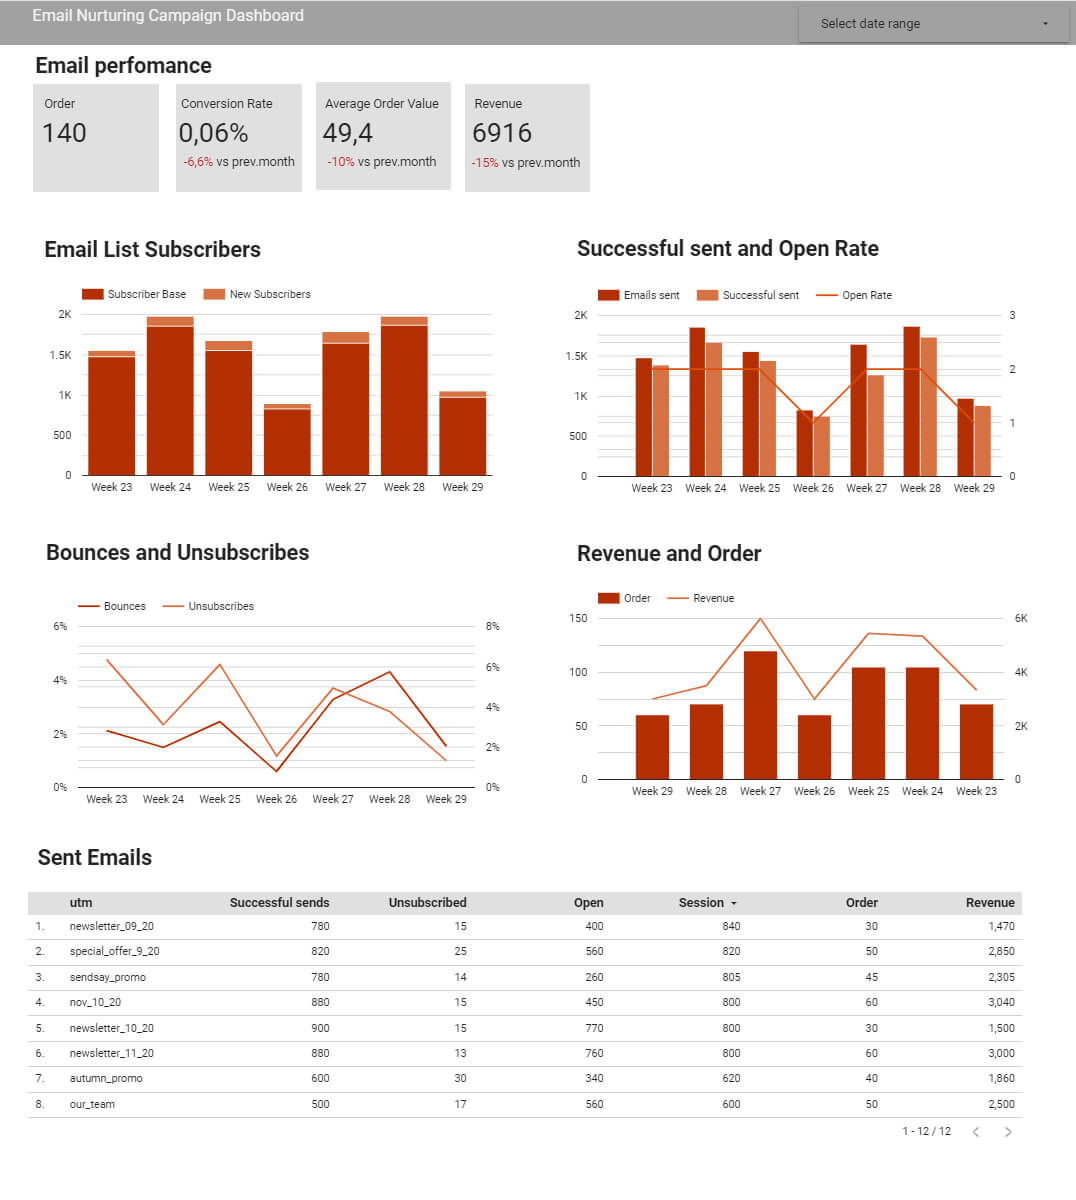 Email marketing dashboard to track nurturing, drip, and regular email campaigns performance.